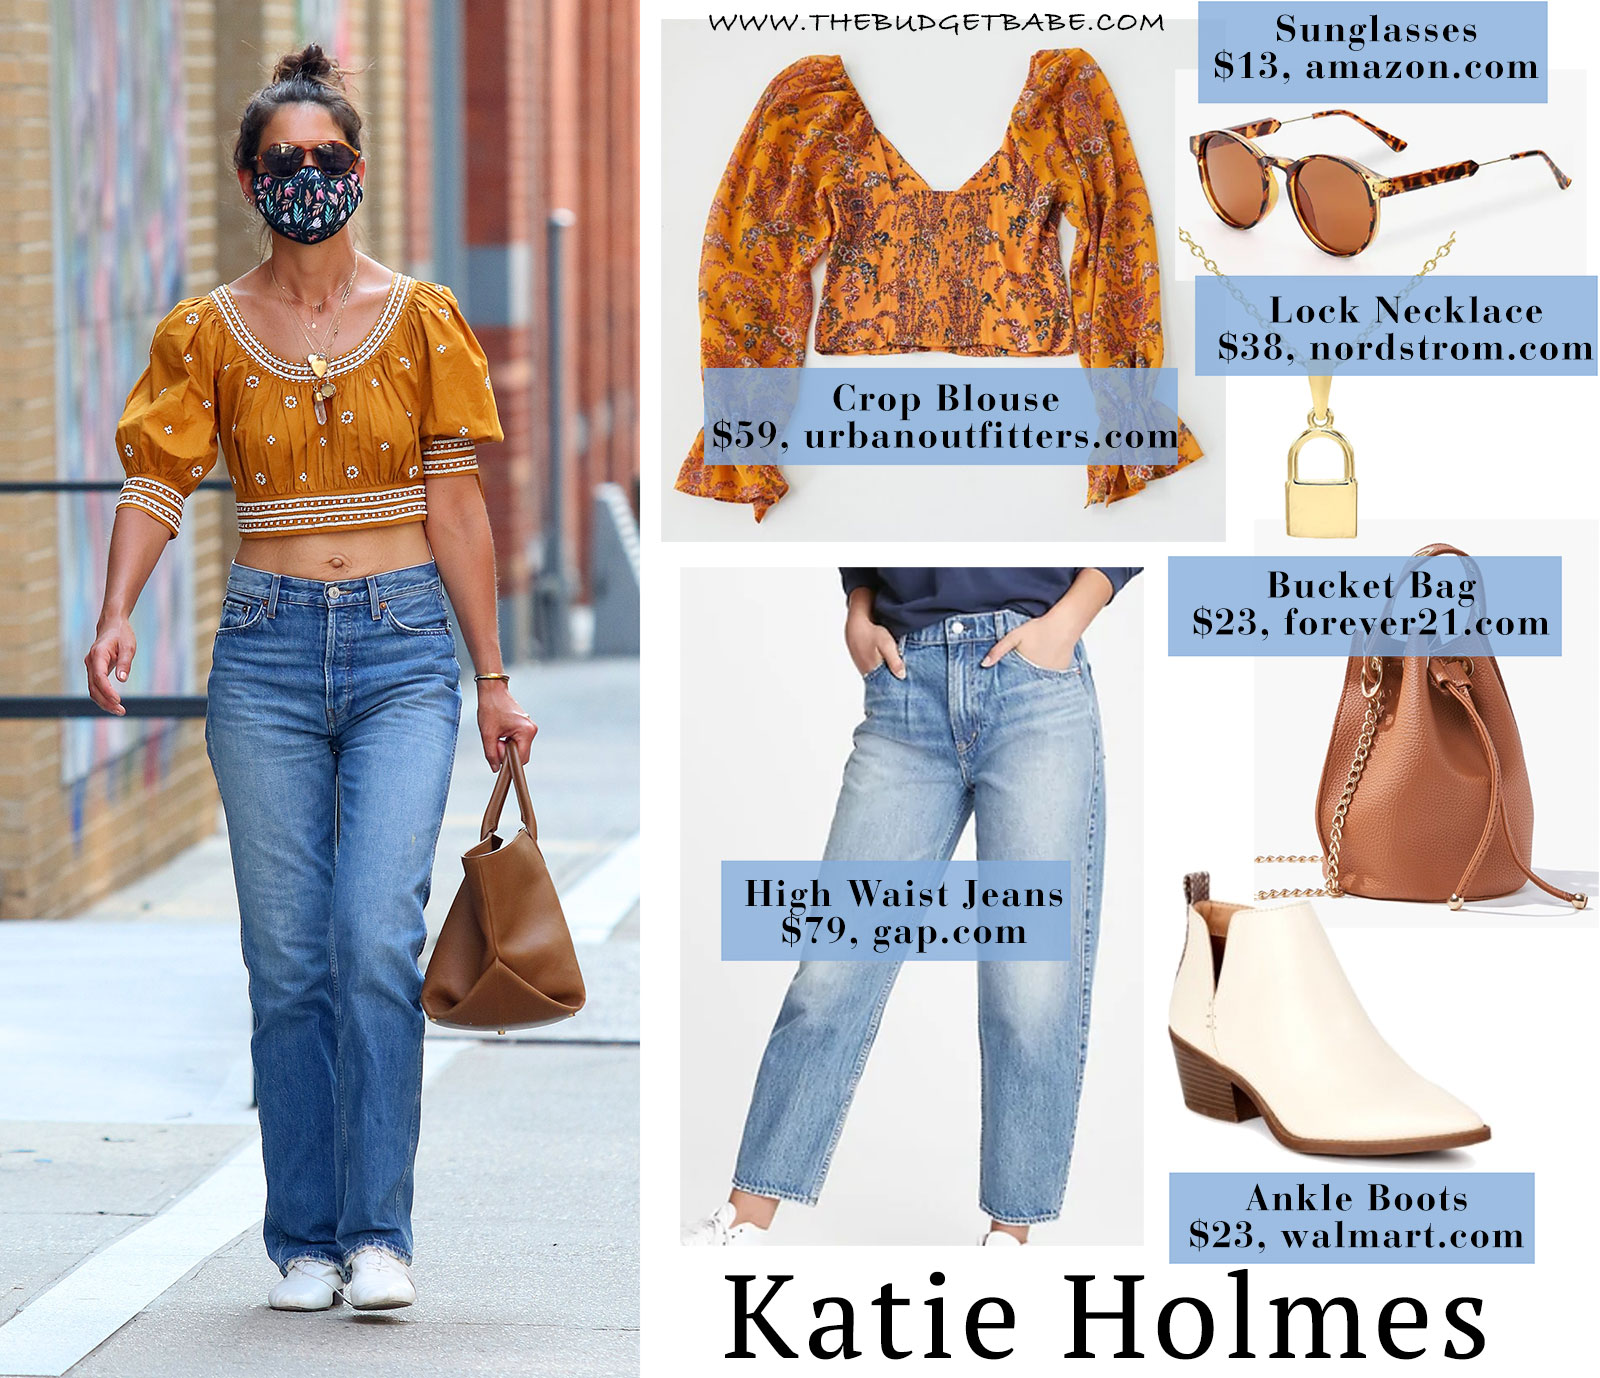 Katie Holmes boho top and high waist jeans